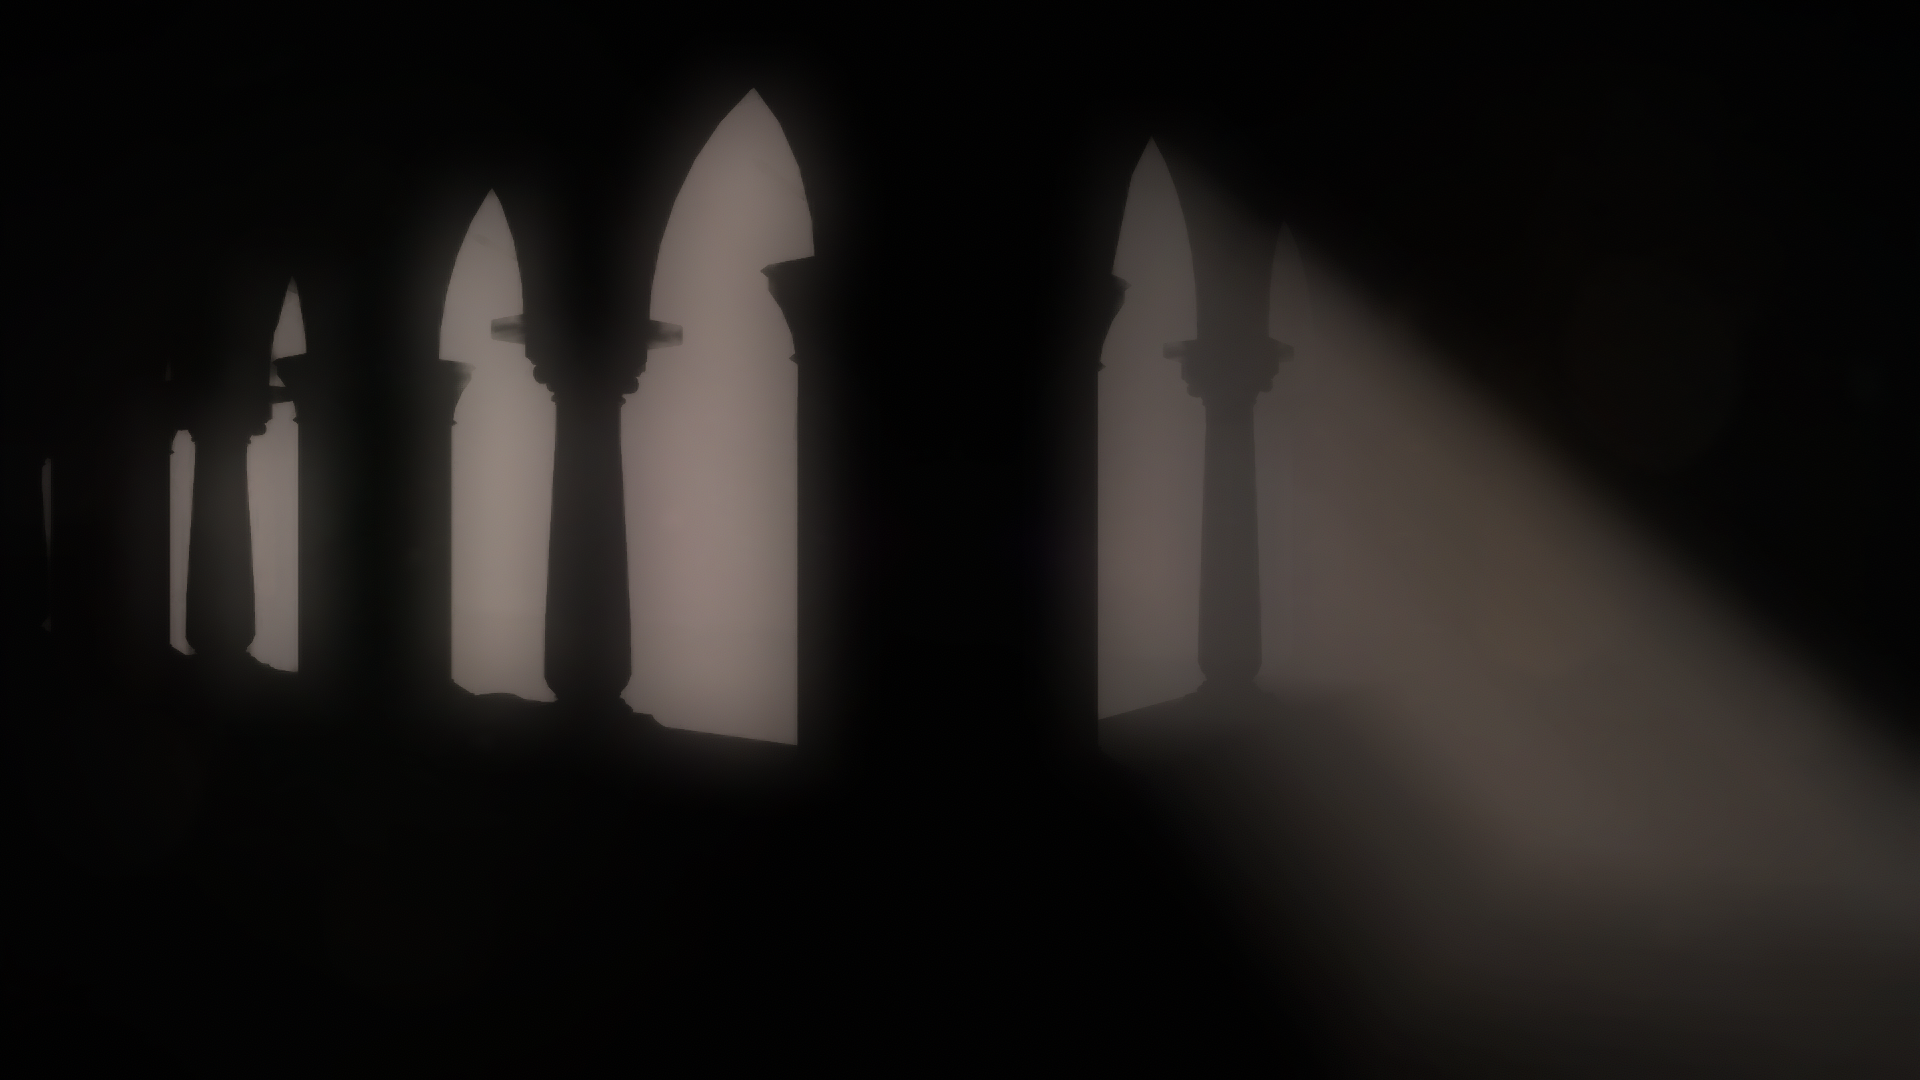 Post-processing in Mobile: Clustered Volumetric Fog - Graphics and